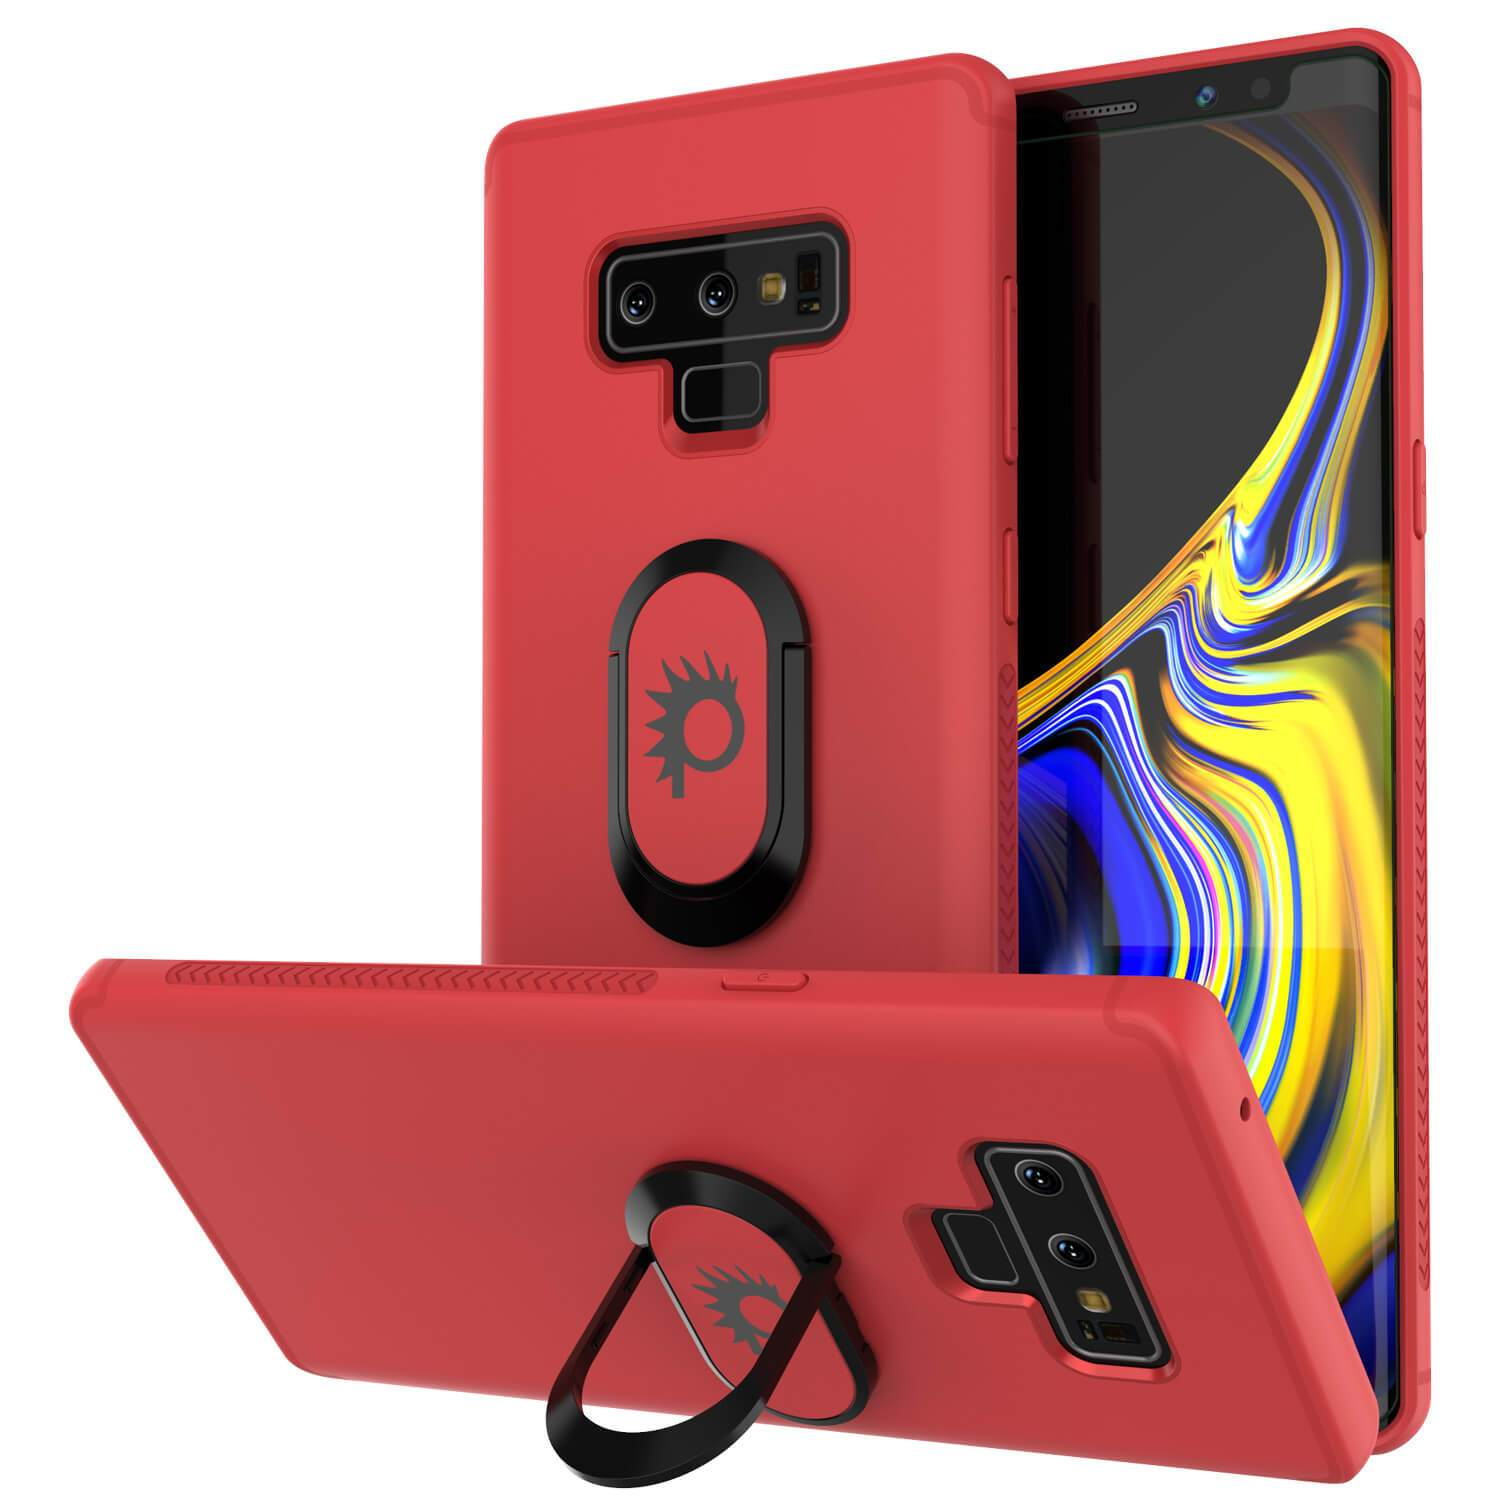 Galaxy Note 9 Case, Punkcase Magnetix  Protective TPU Cover W/ Tempered Glass Screen Protector & Kickstand [Red]